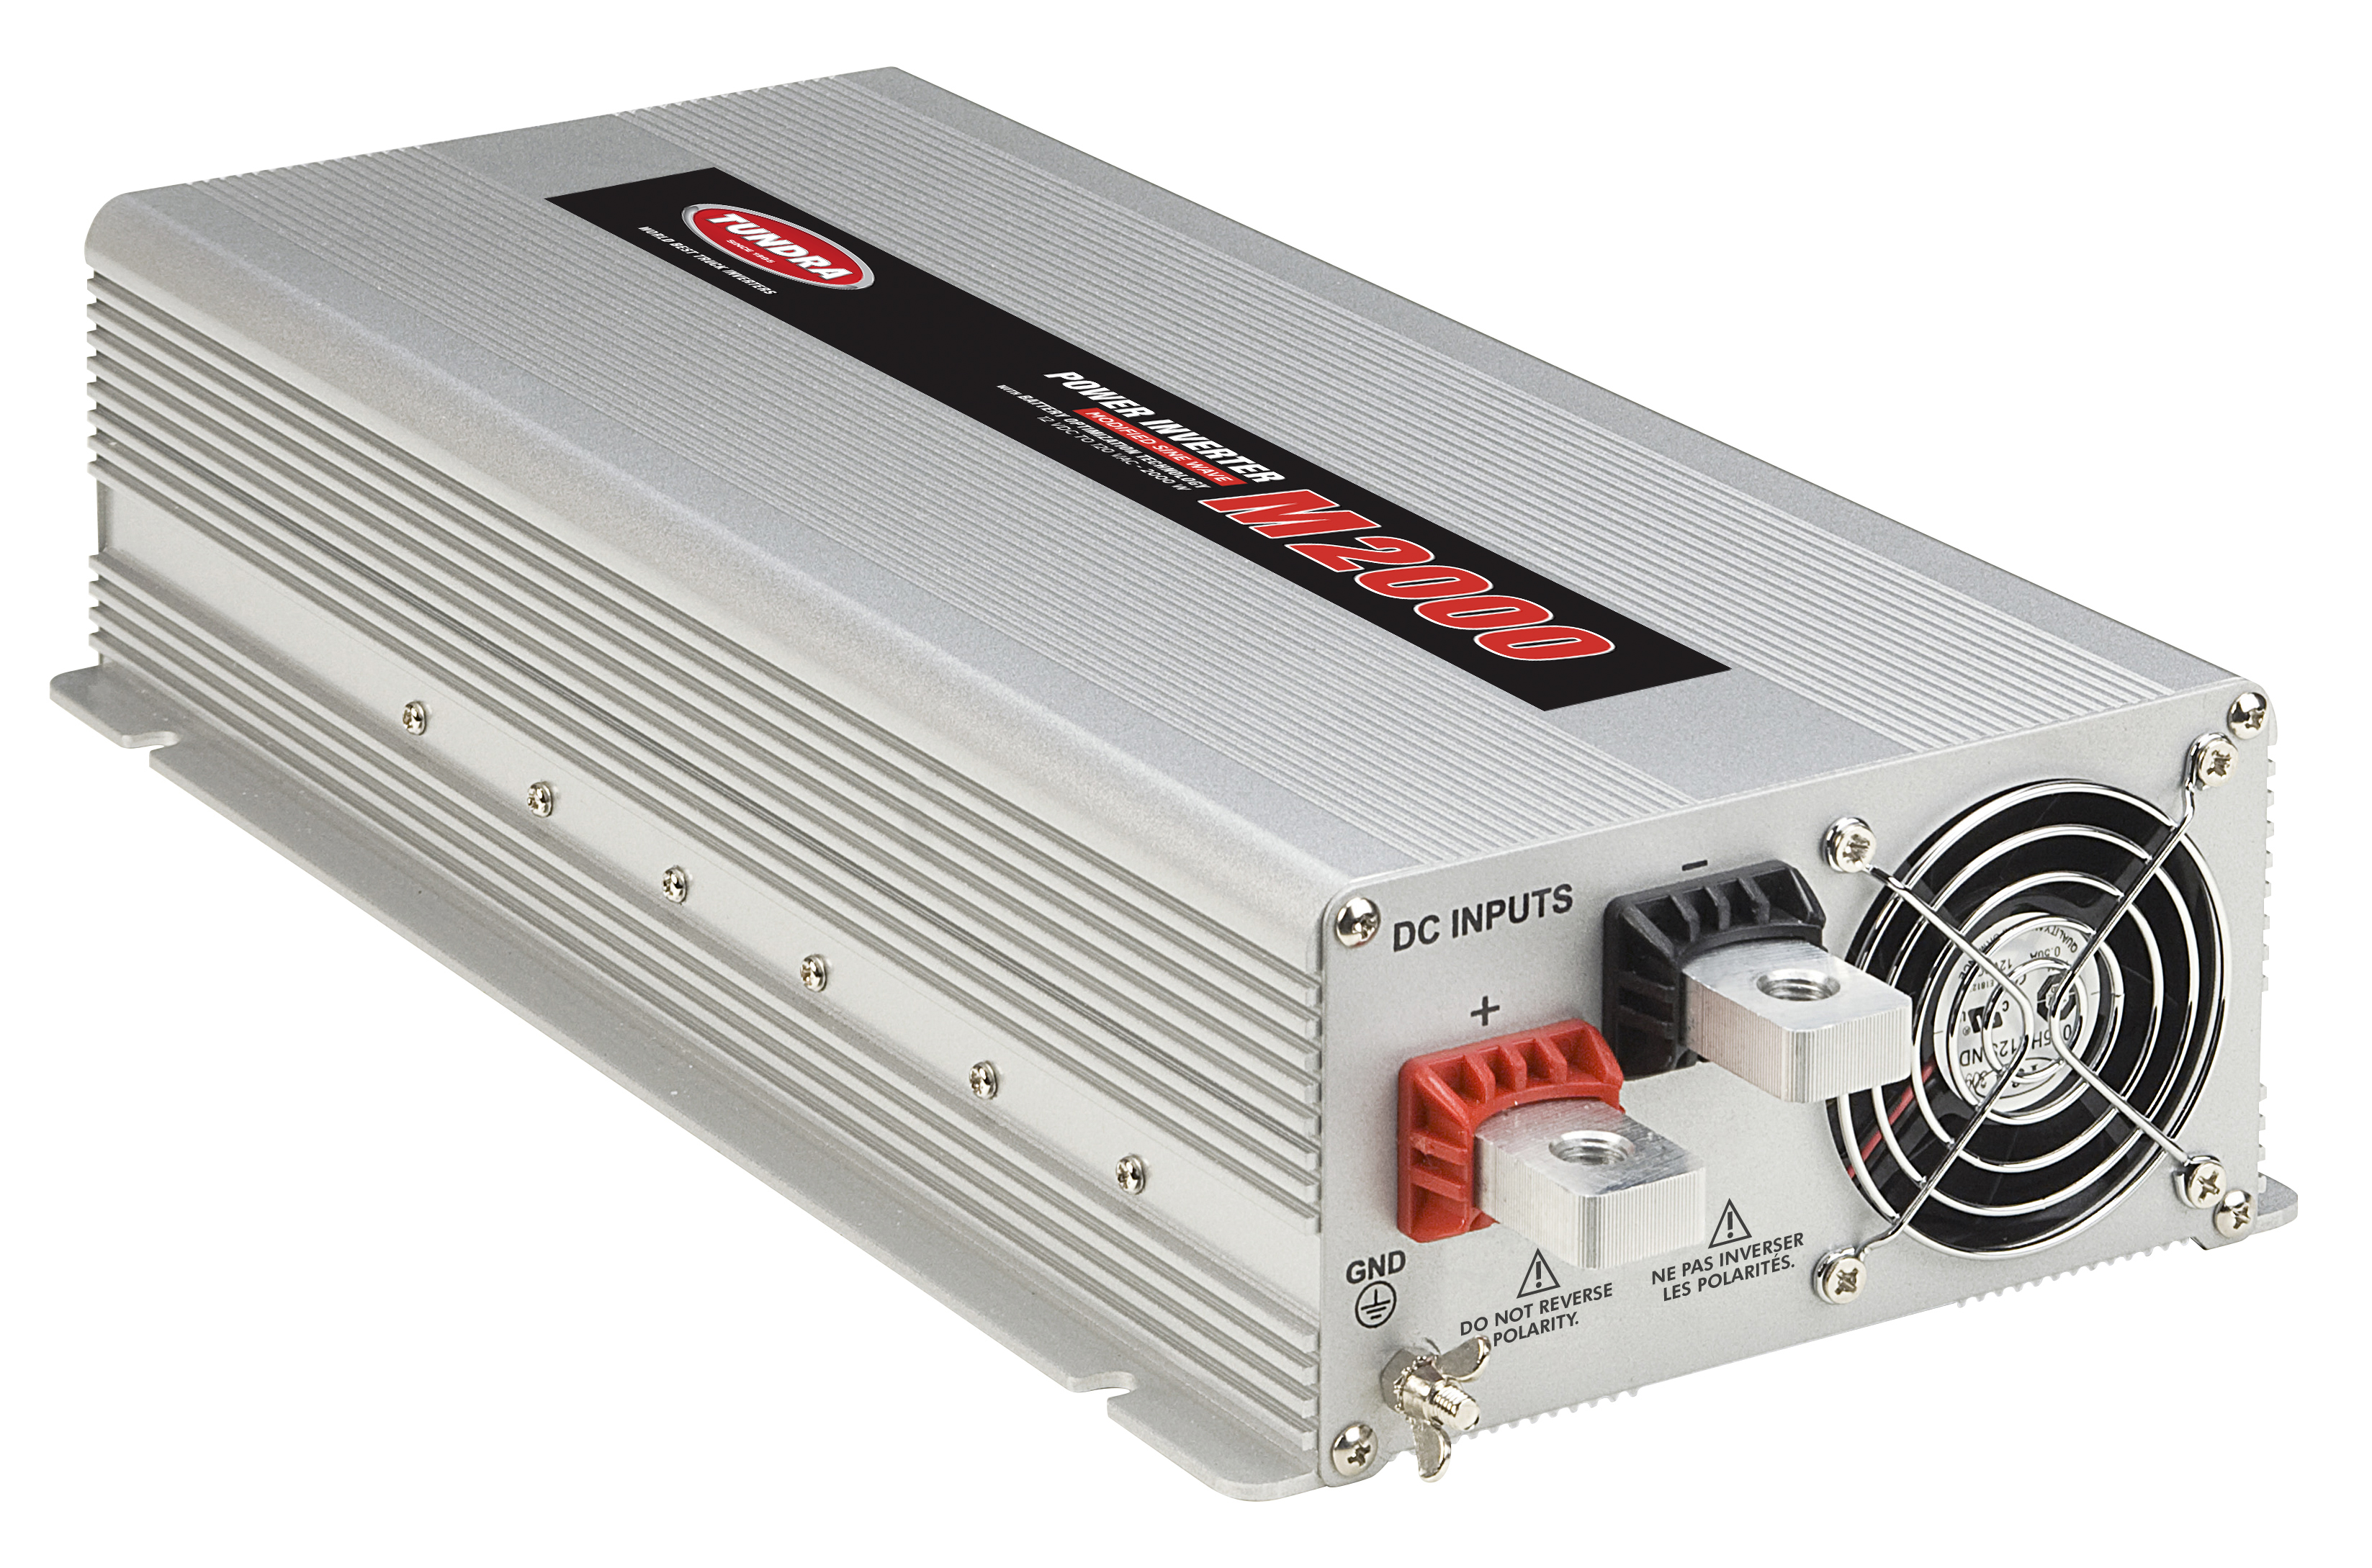 Tundra 2000w Modified Sine Wave Power Inverter With Battery Optimization Technology M2000 Pana Pacific